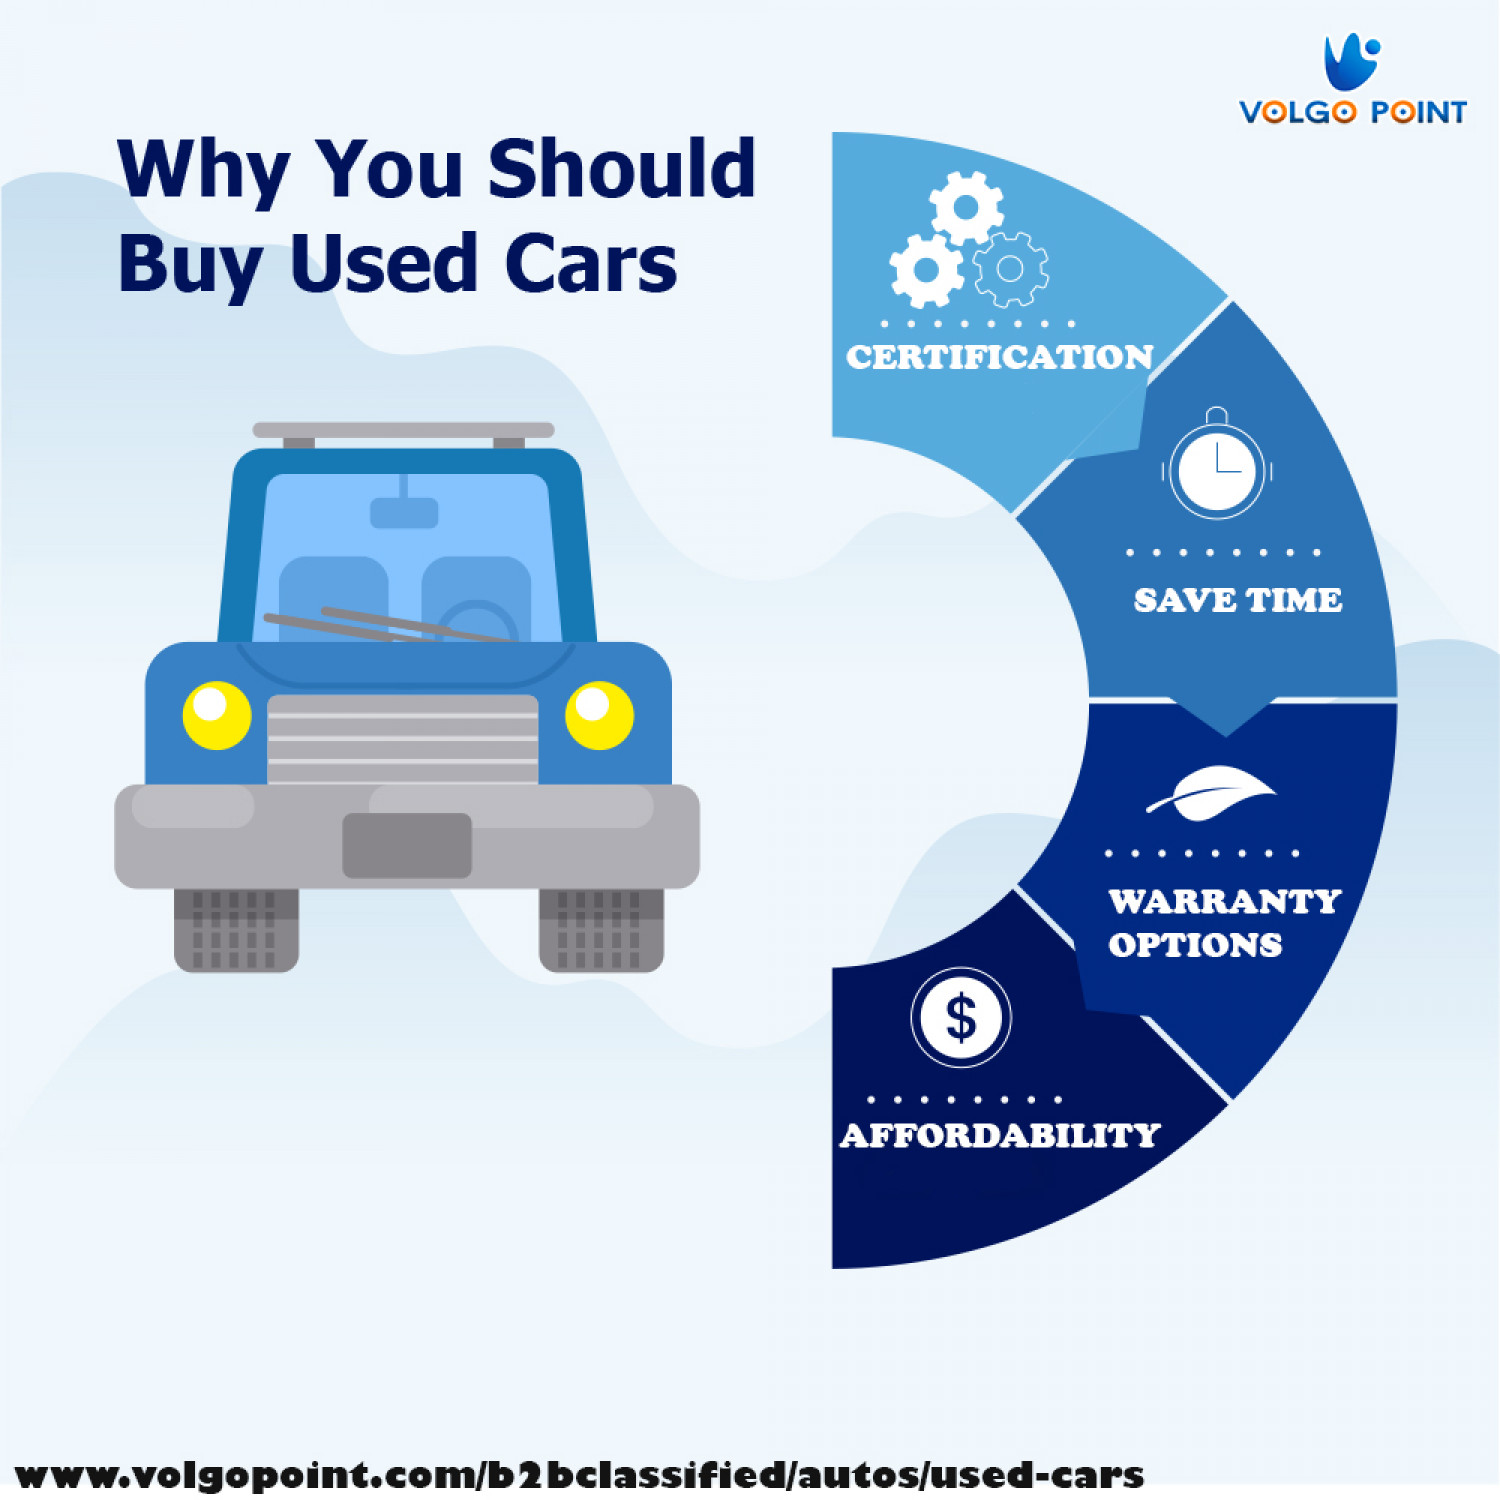 Why You Should Buy Used Car Infographic